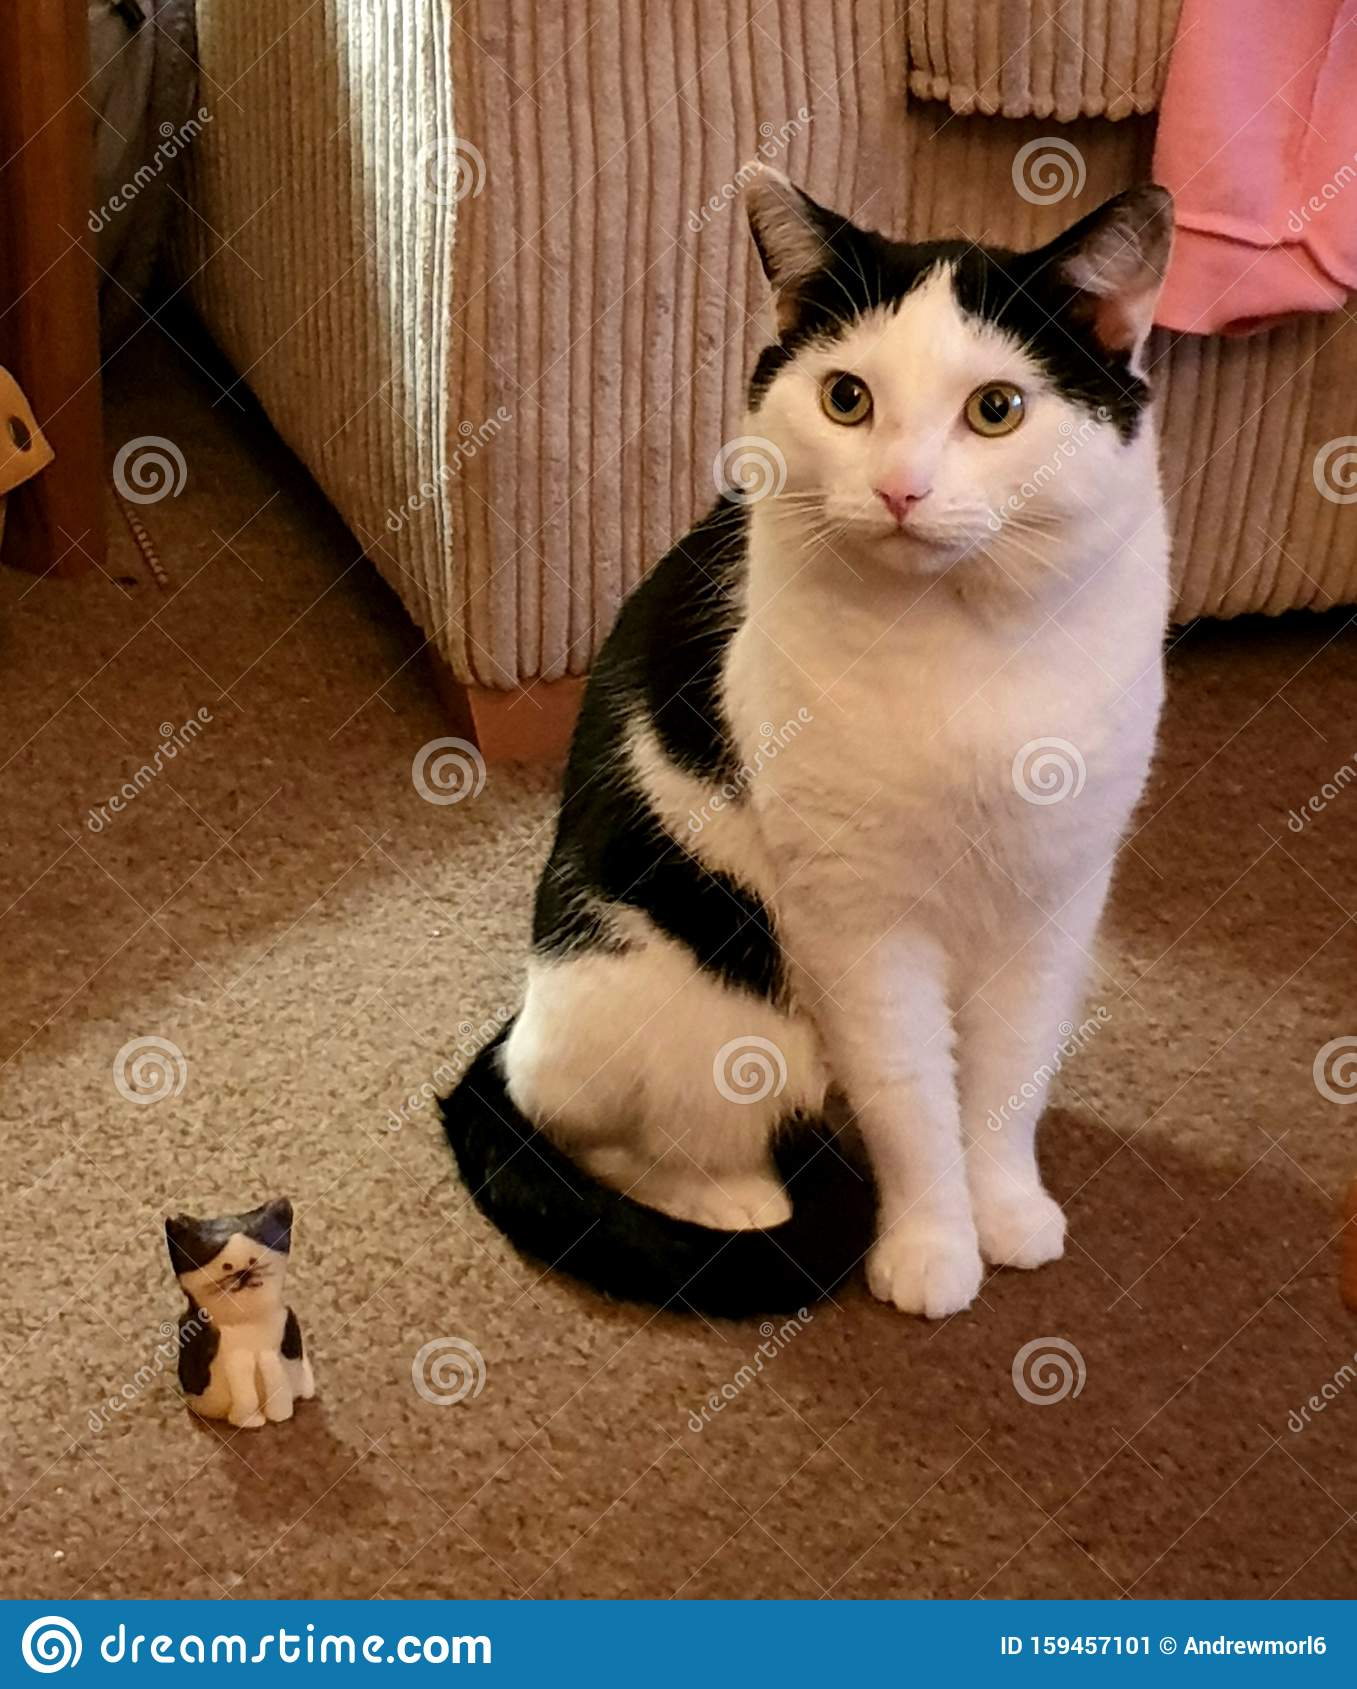 Cat Posing With A Model Cat Stock Image - Image of meow ...